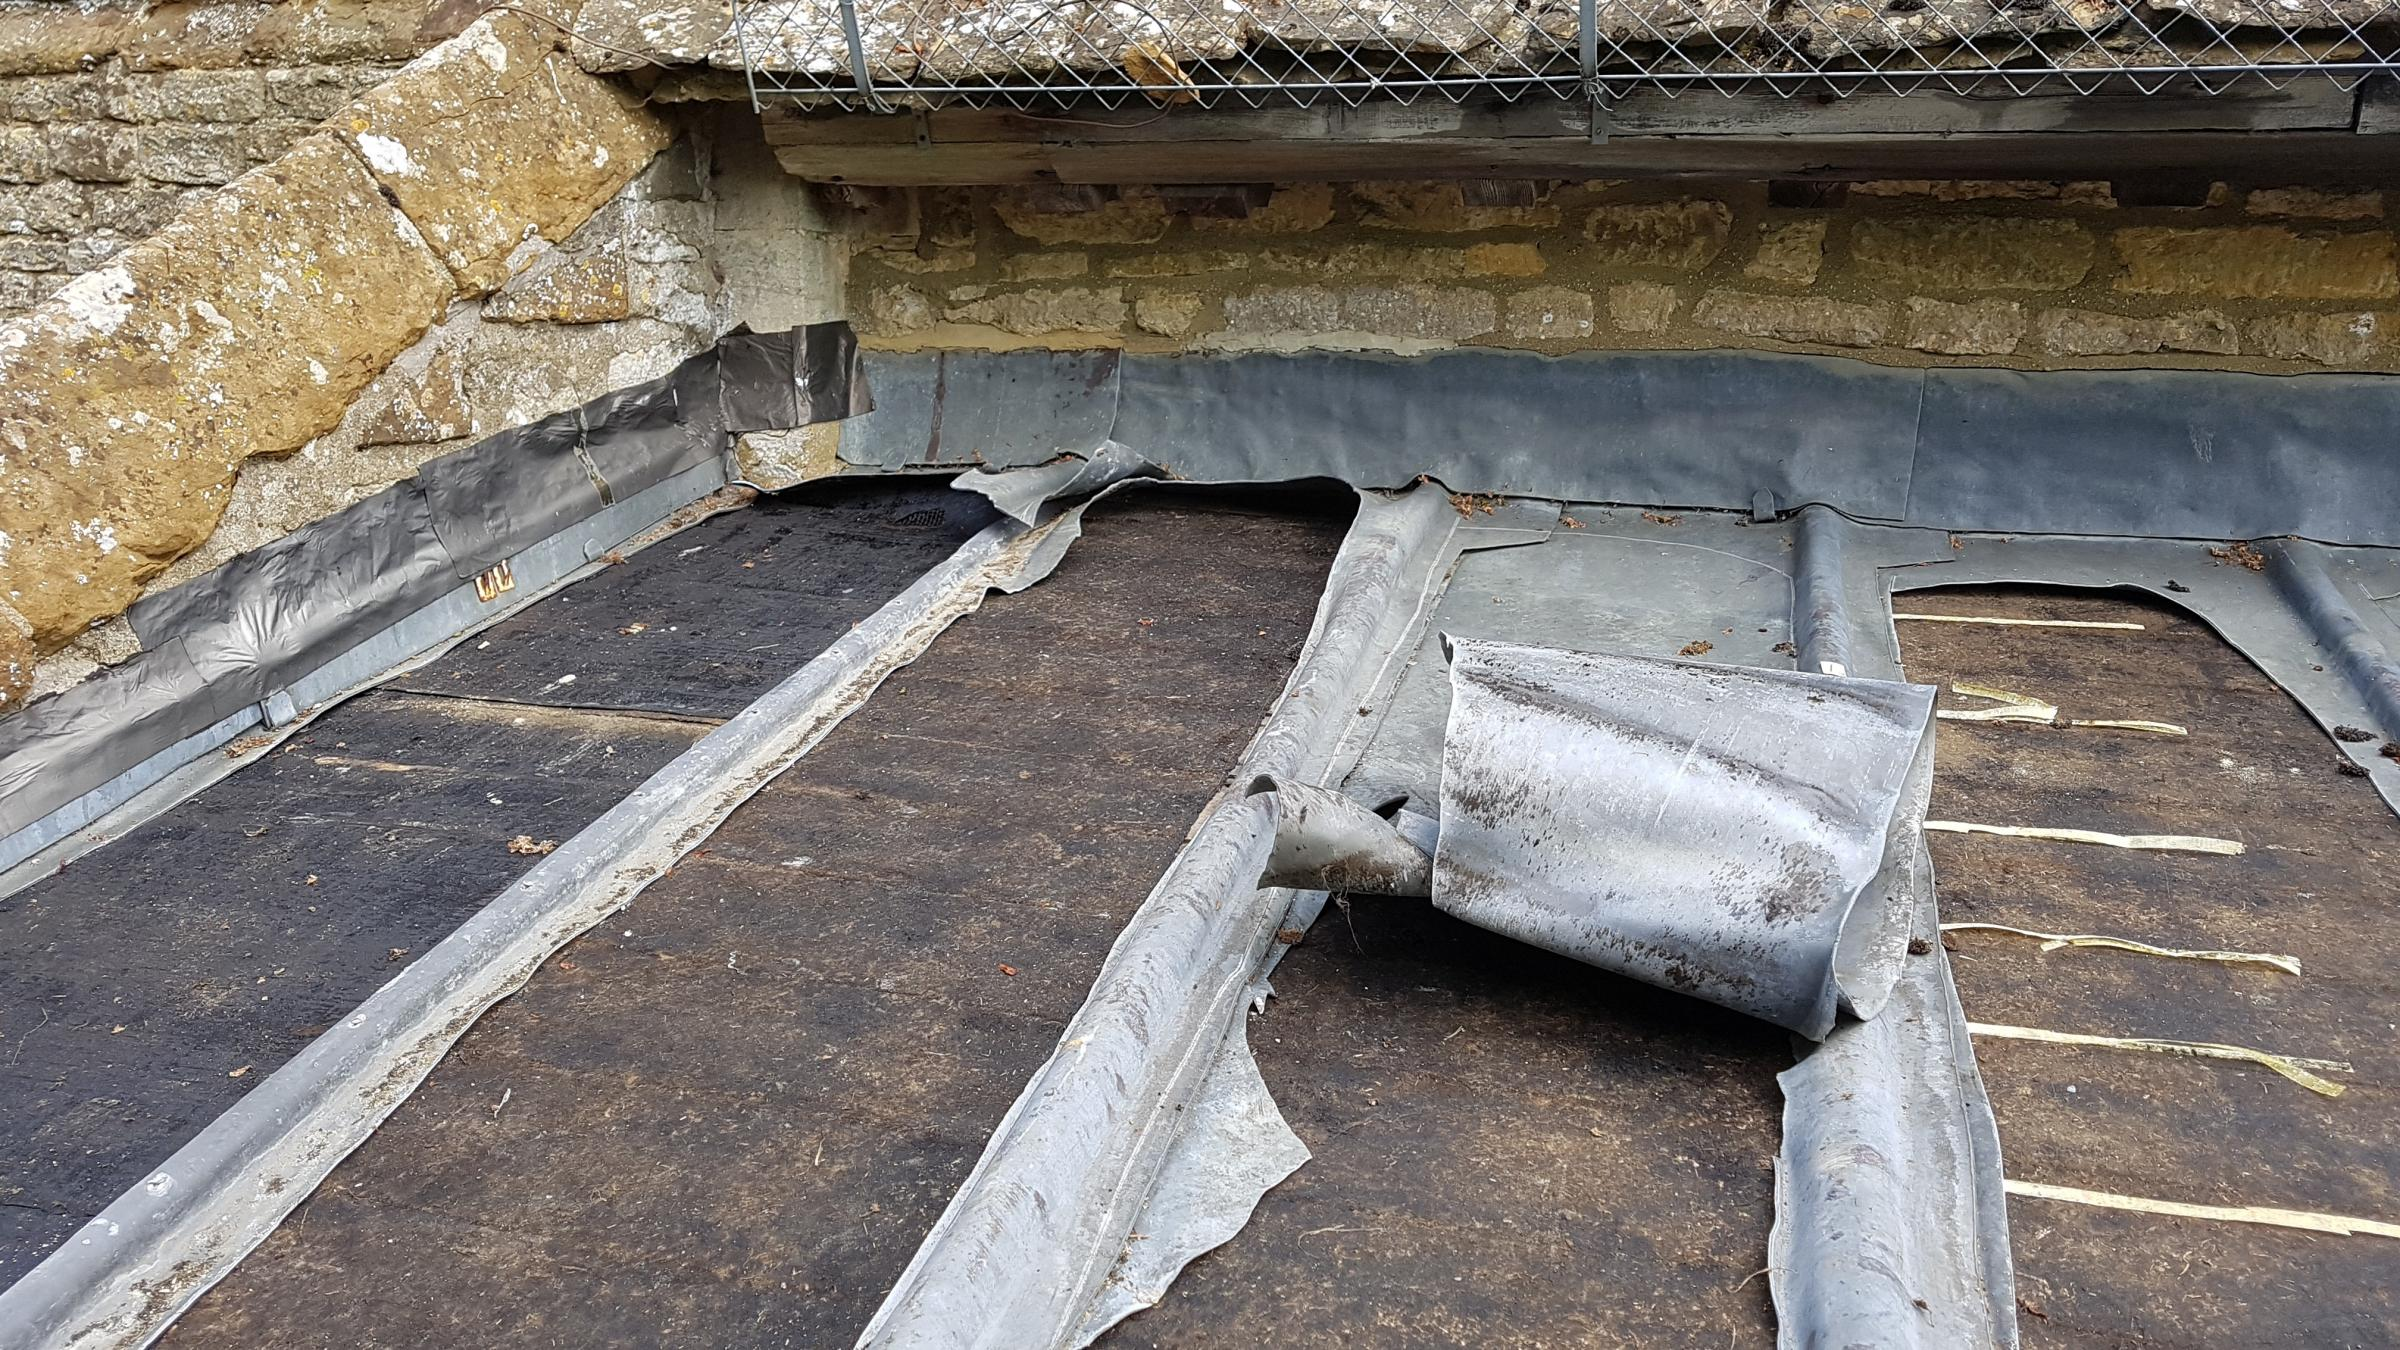 Church roof lead thefts 'rocketing' warns Oxford Diocese